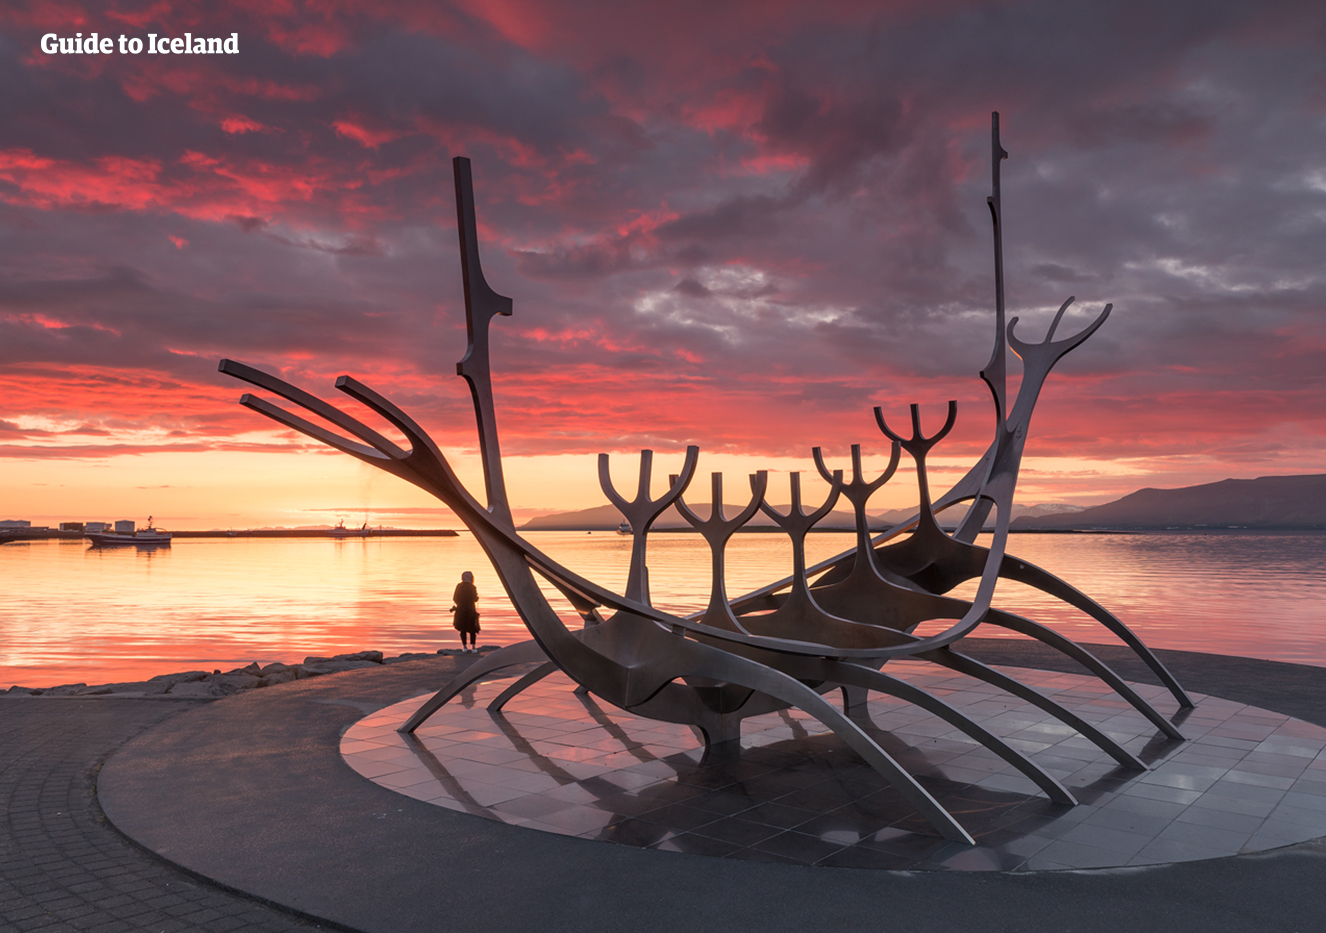 The Sun Voyager monument on the Reykjavik shore front.